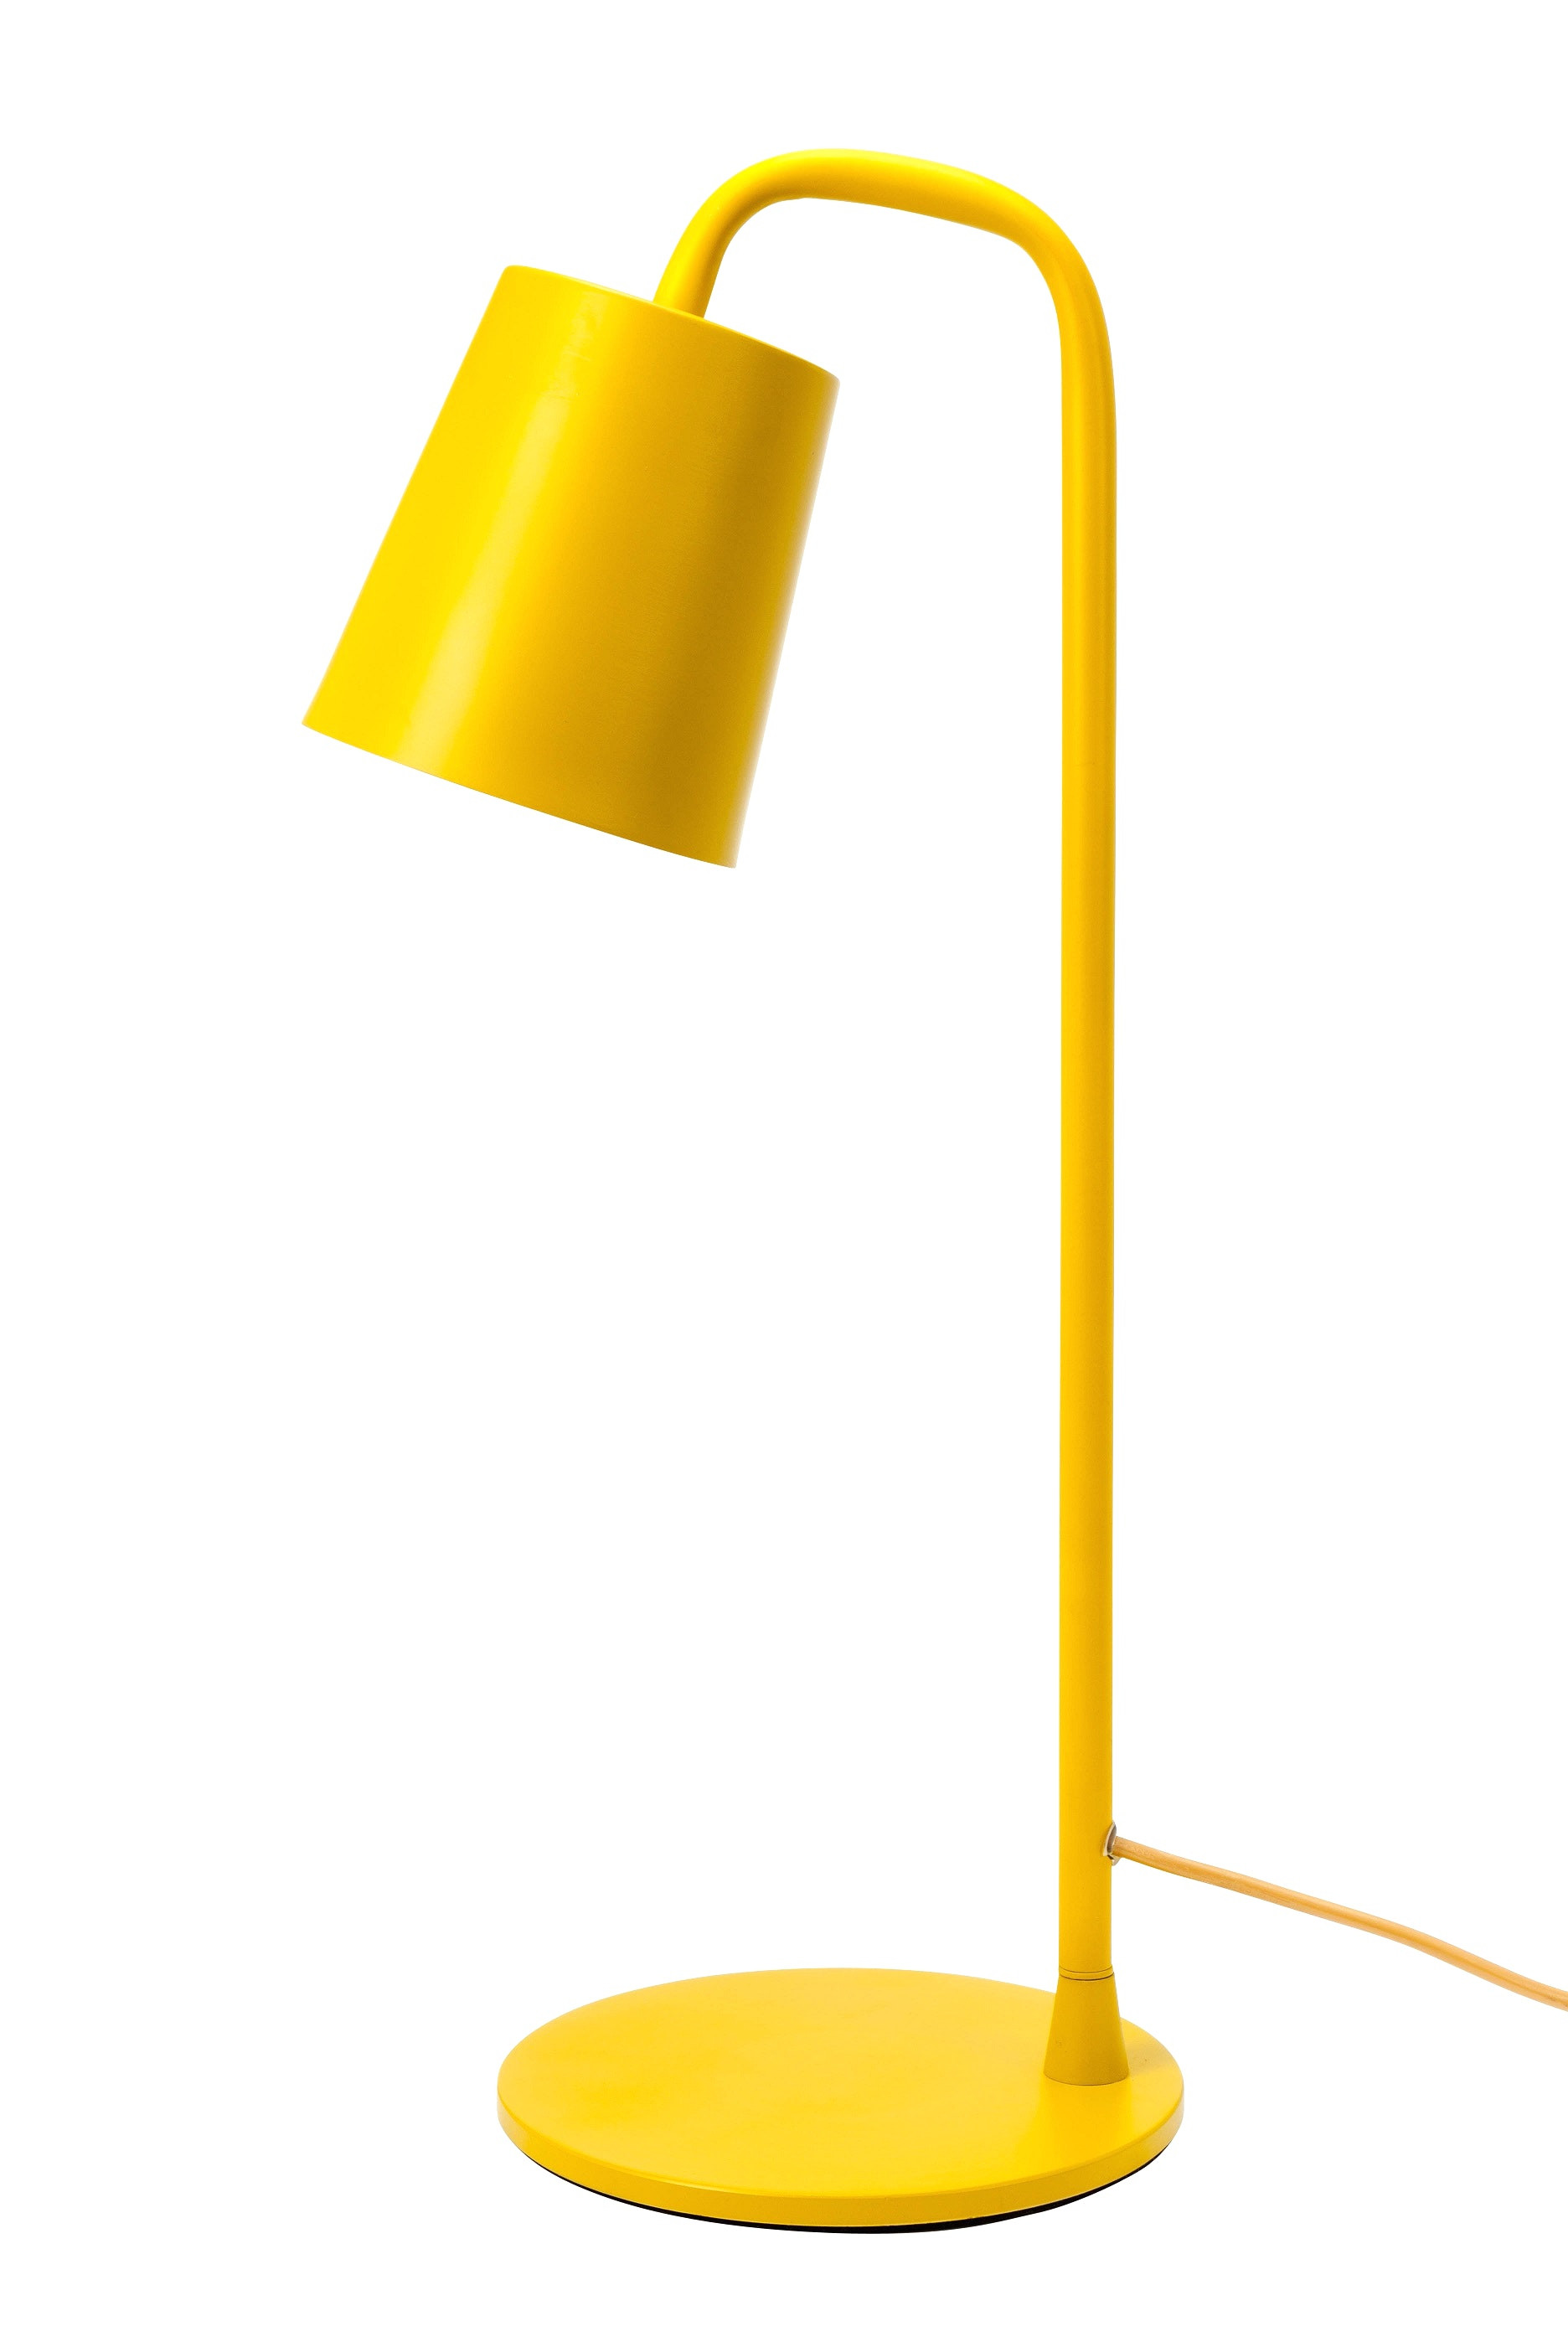 Best ideas about Yellow Desk Lamp . Save or Pin Table Lamps Yellow Table Lamps Modern Mid Century Desk Now.